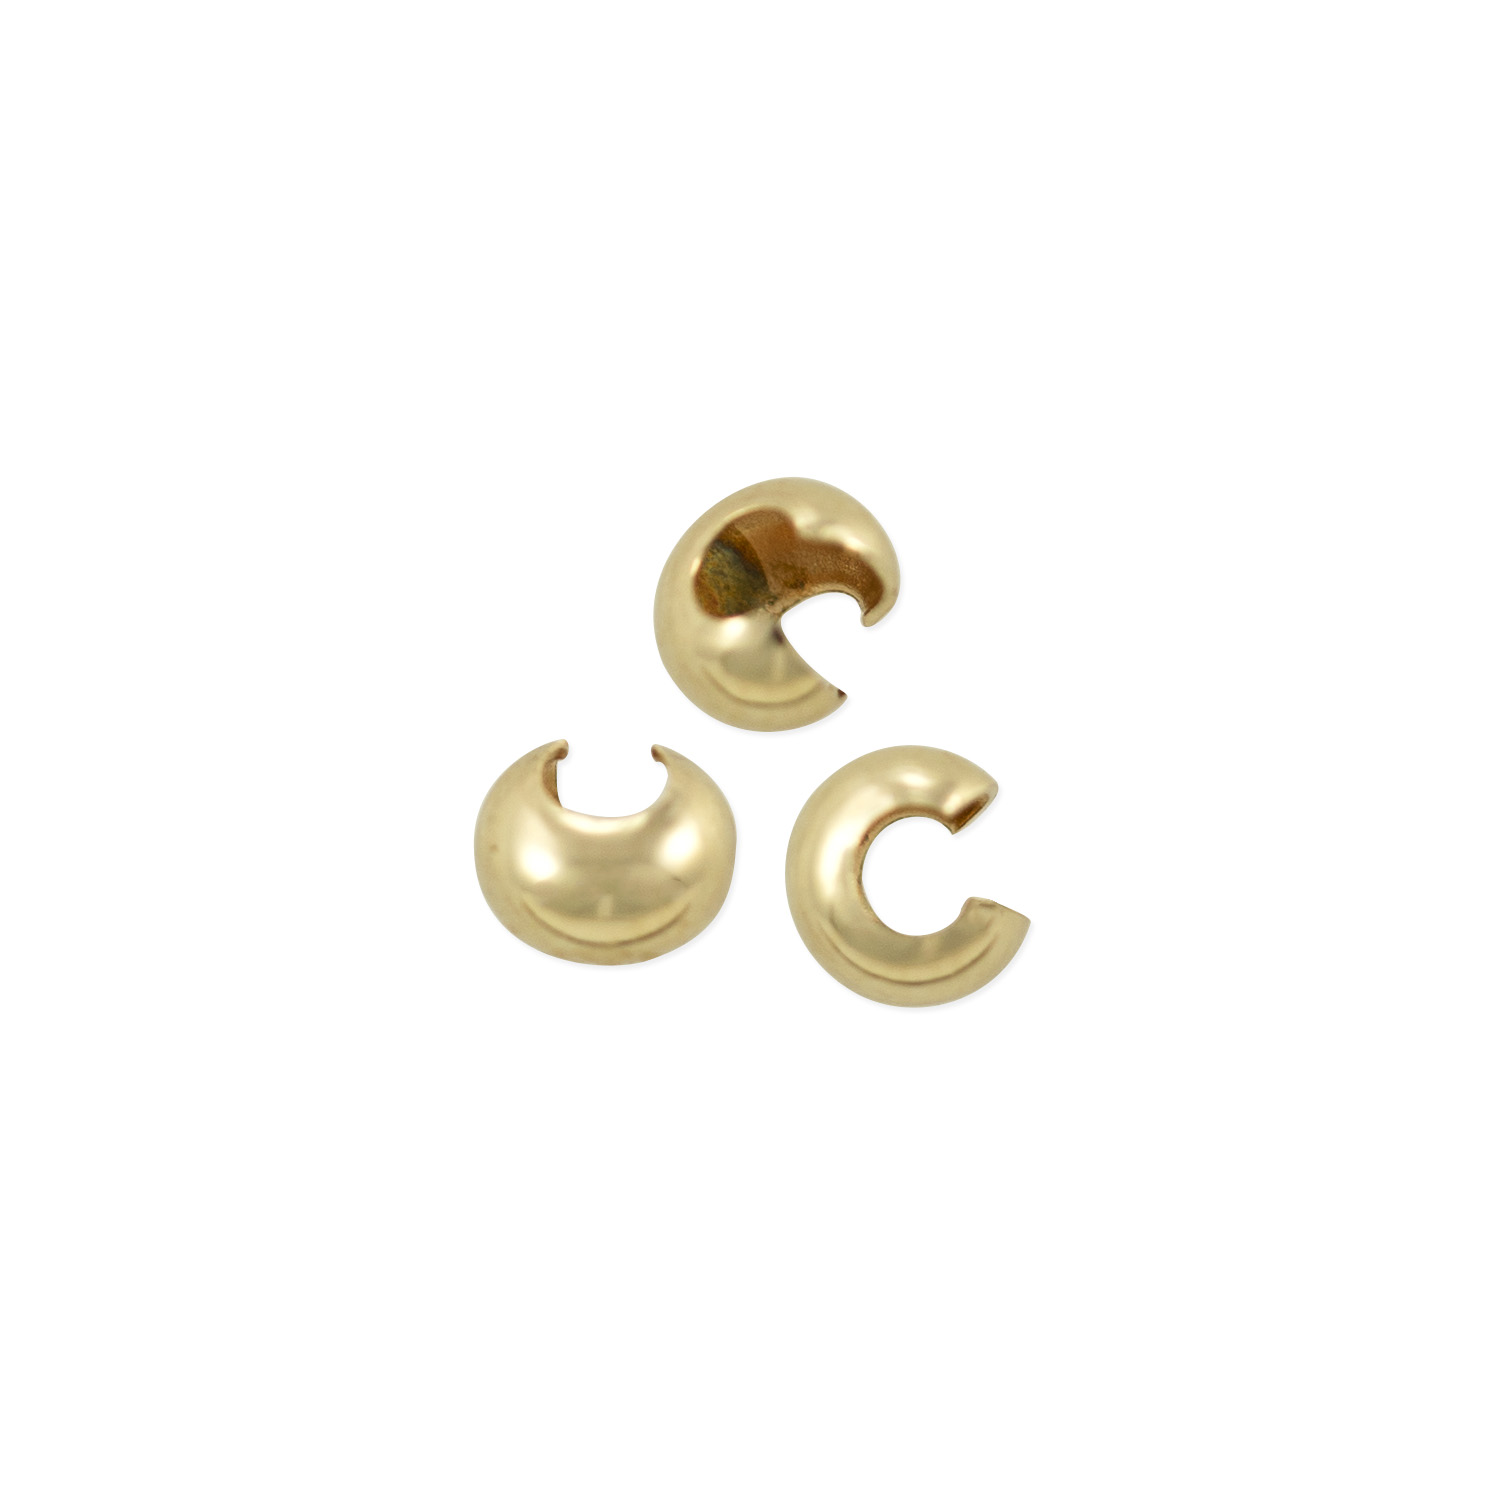 Gold Plated Crimp Cover Beads 3mm 4mm 5mm Findings